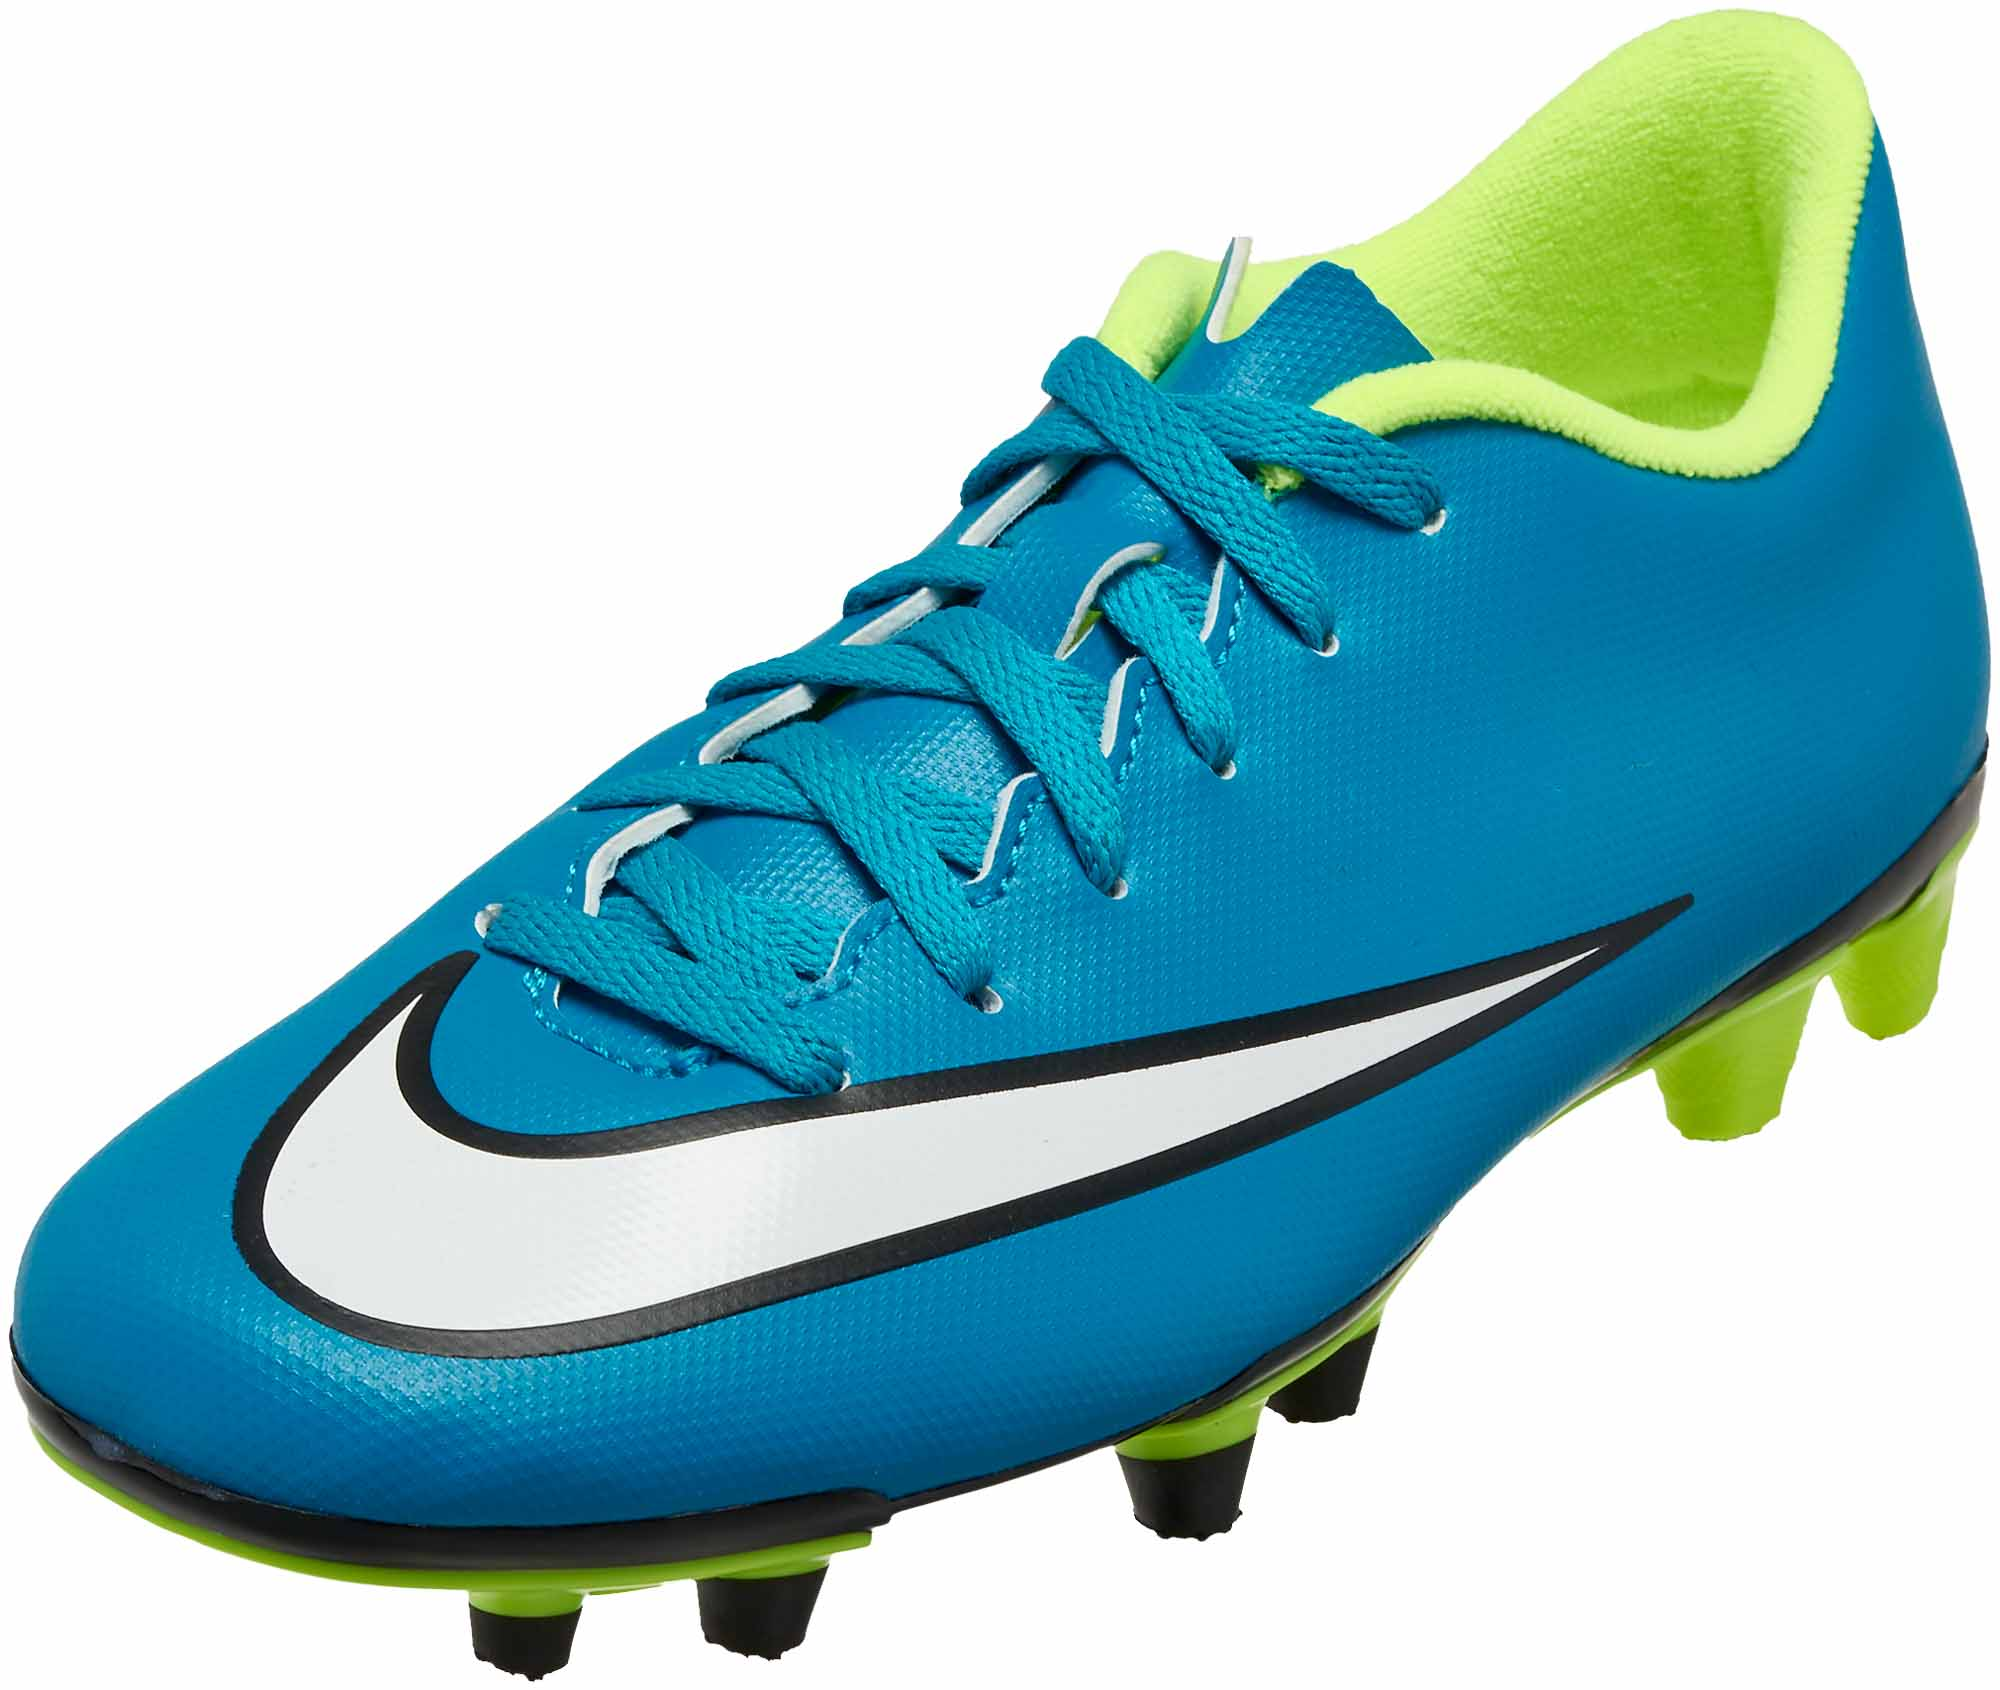 Nike Womens Mercurial Vortex II FG Soccer Cleats - Blue and White ... f6f95a1186a5